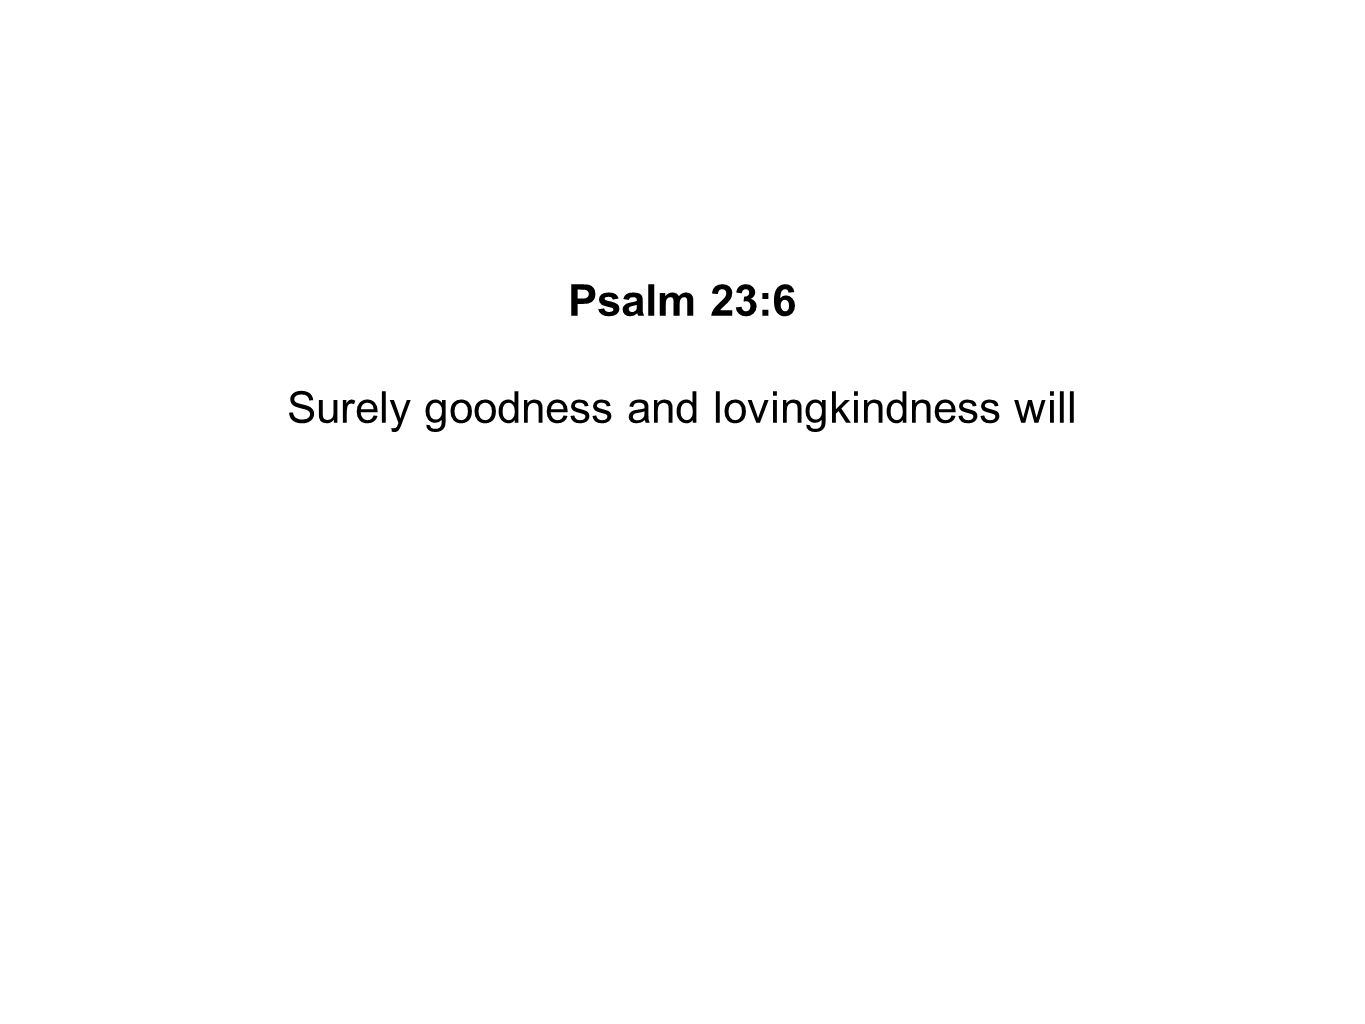 Surely goodness and lovingkindness will